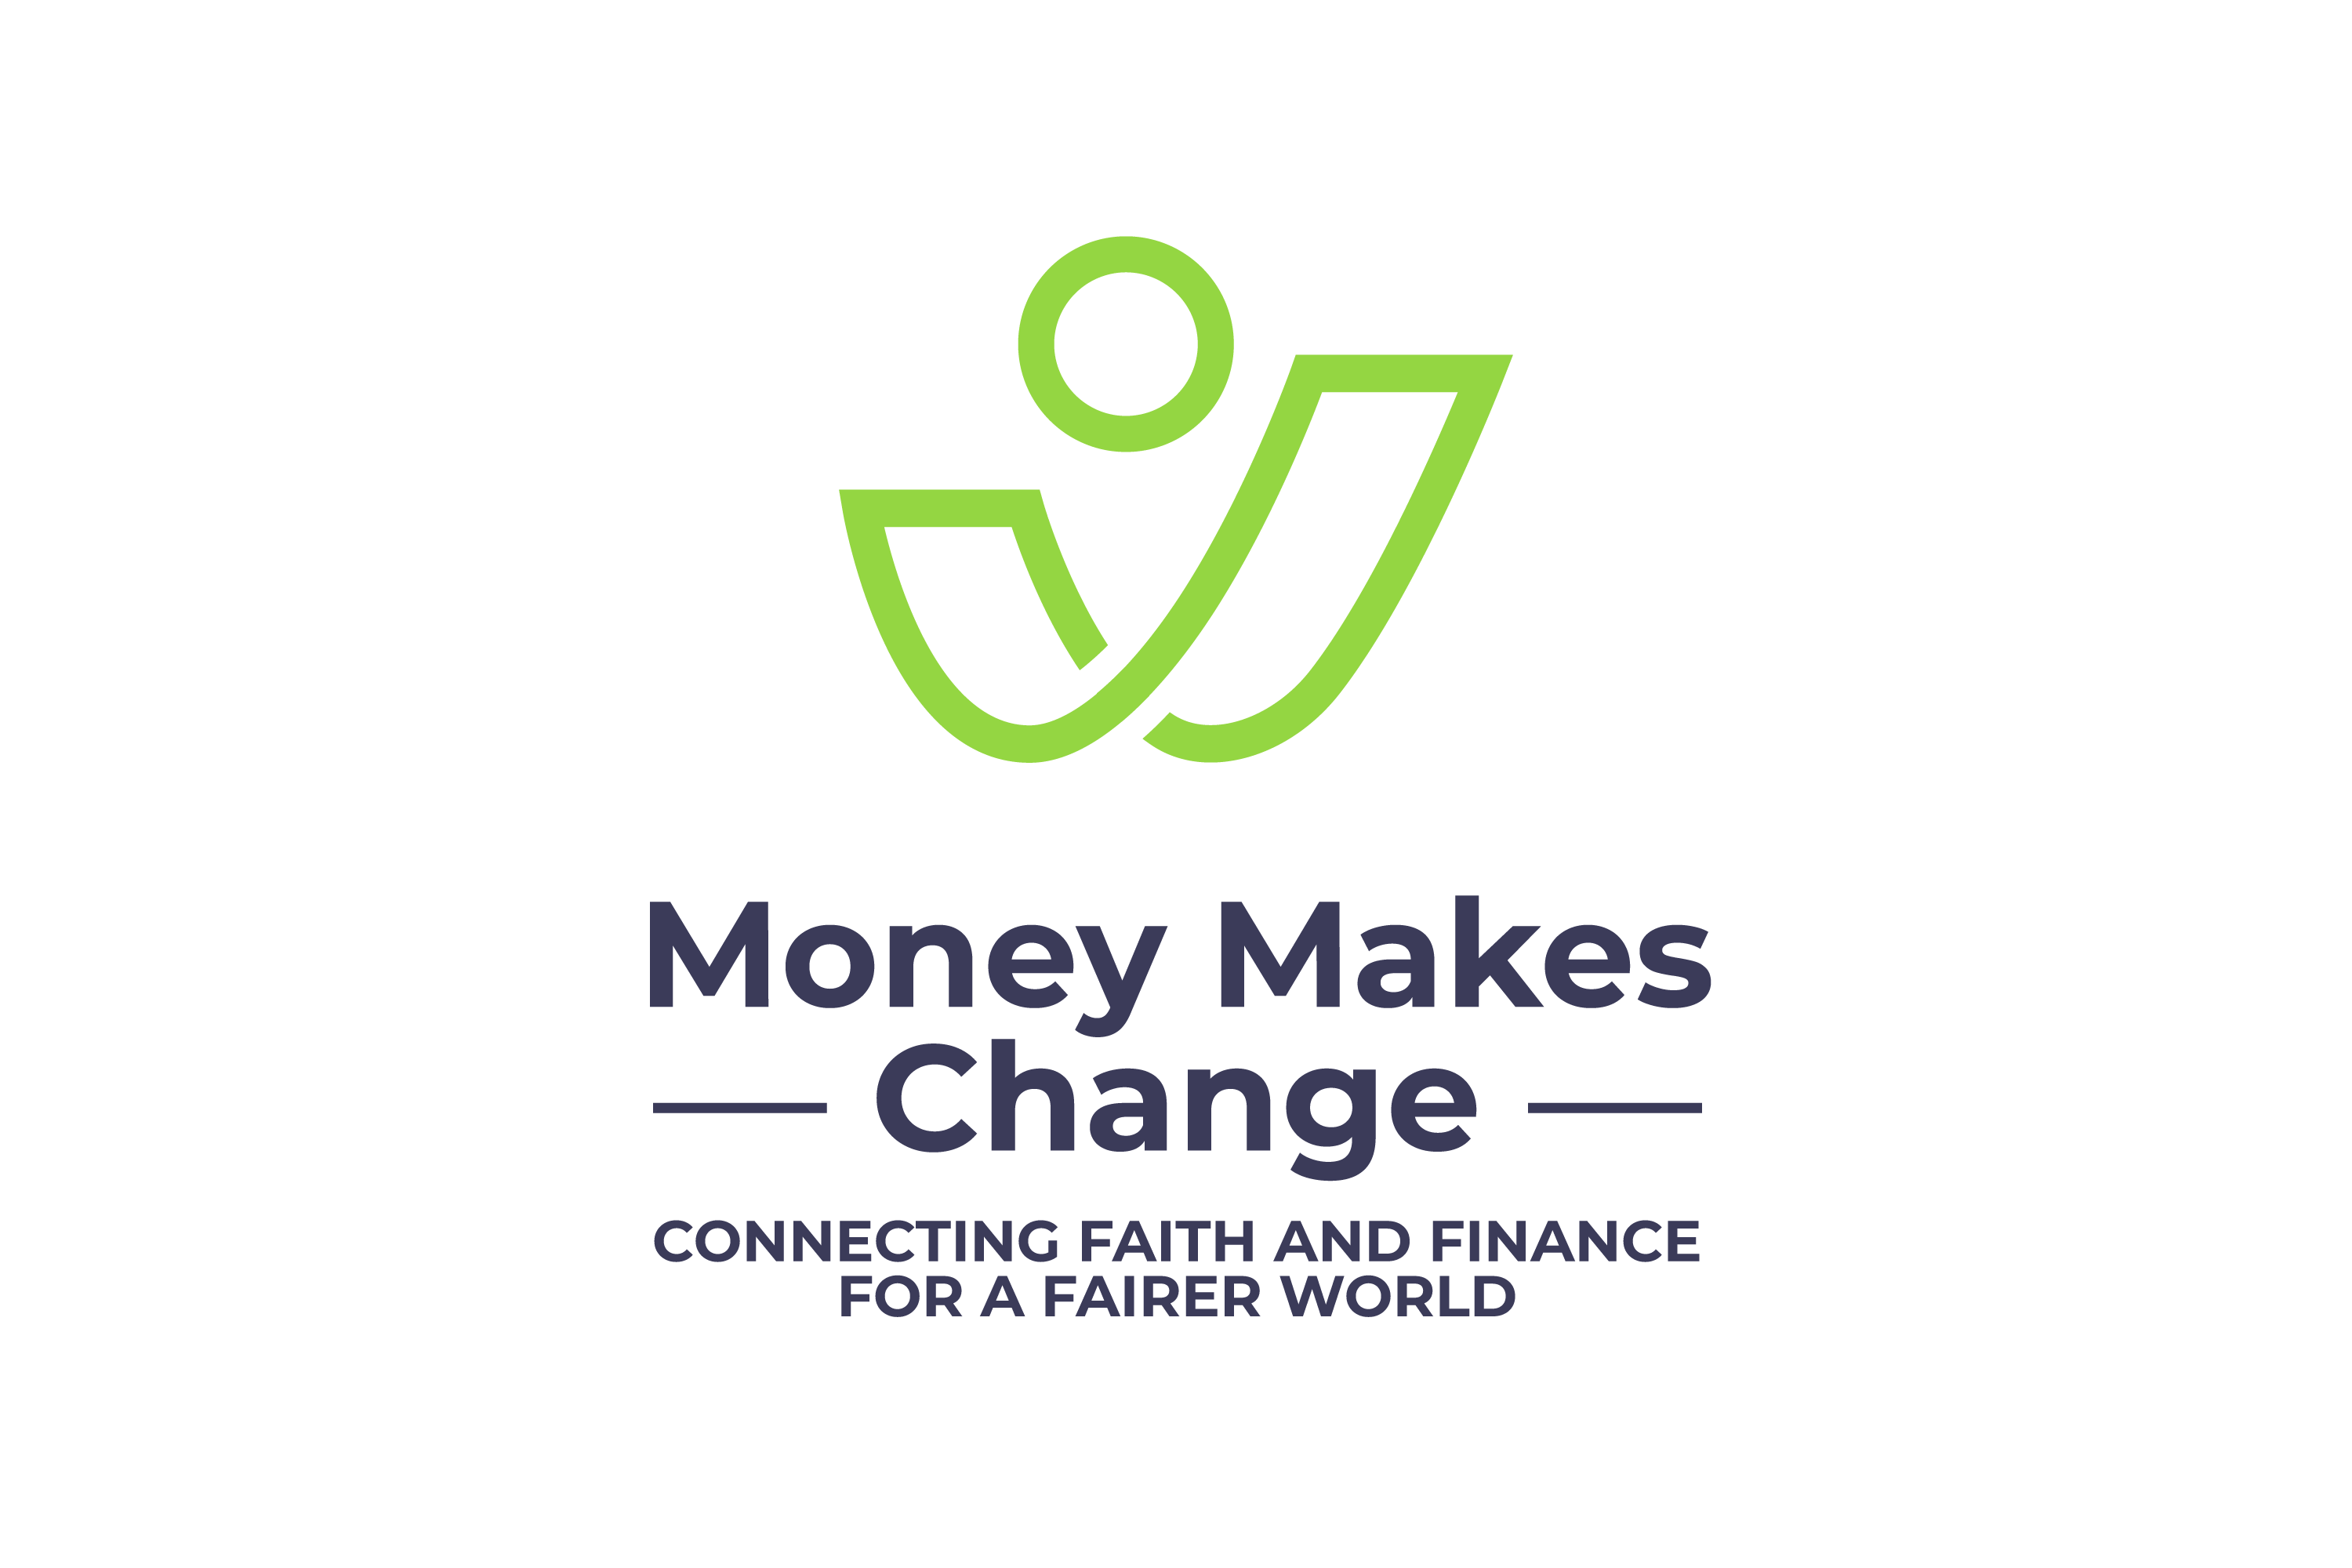 Why Money Makes Change?